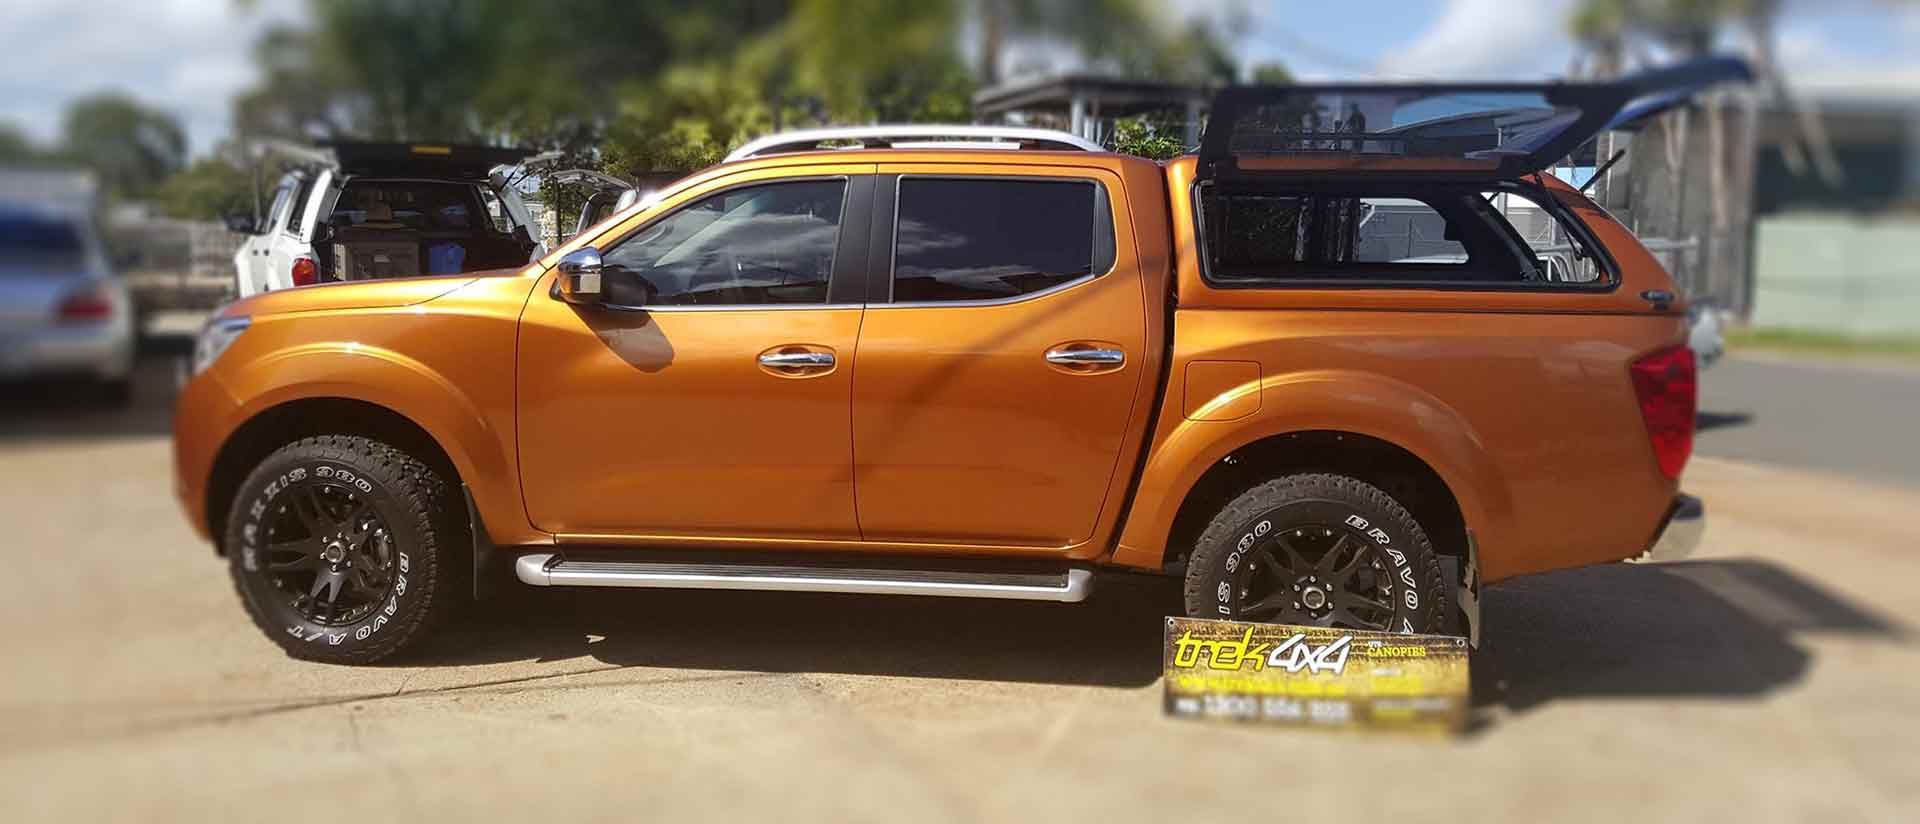 EKO Canopies. u0026 4x4 Accessories & Trek 4X4 - Canopies for your ute or 4x4 Vehicle